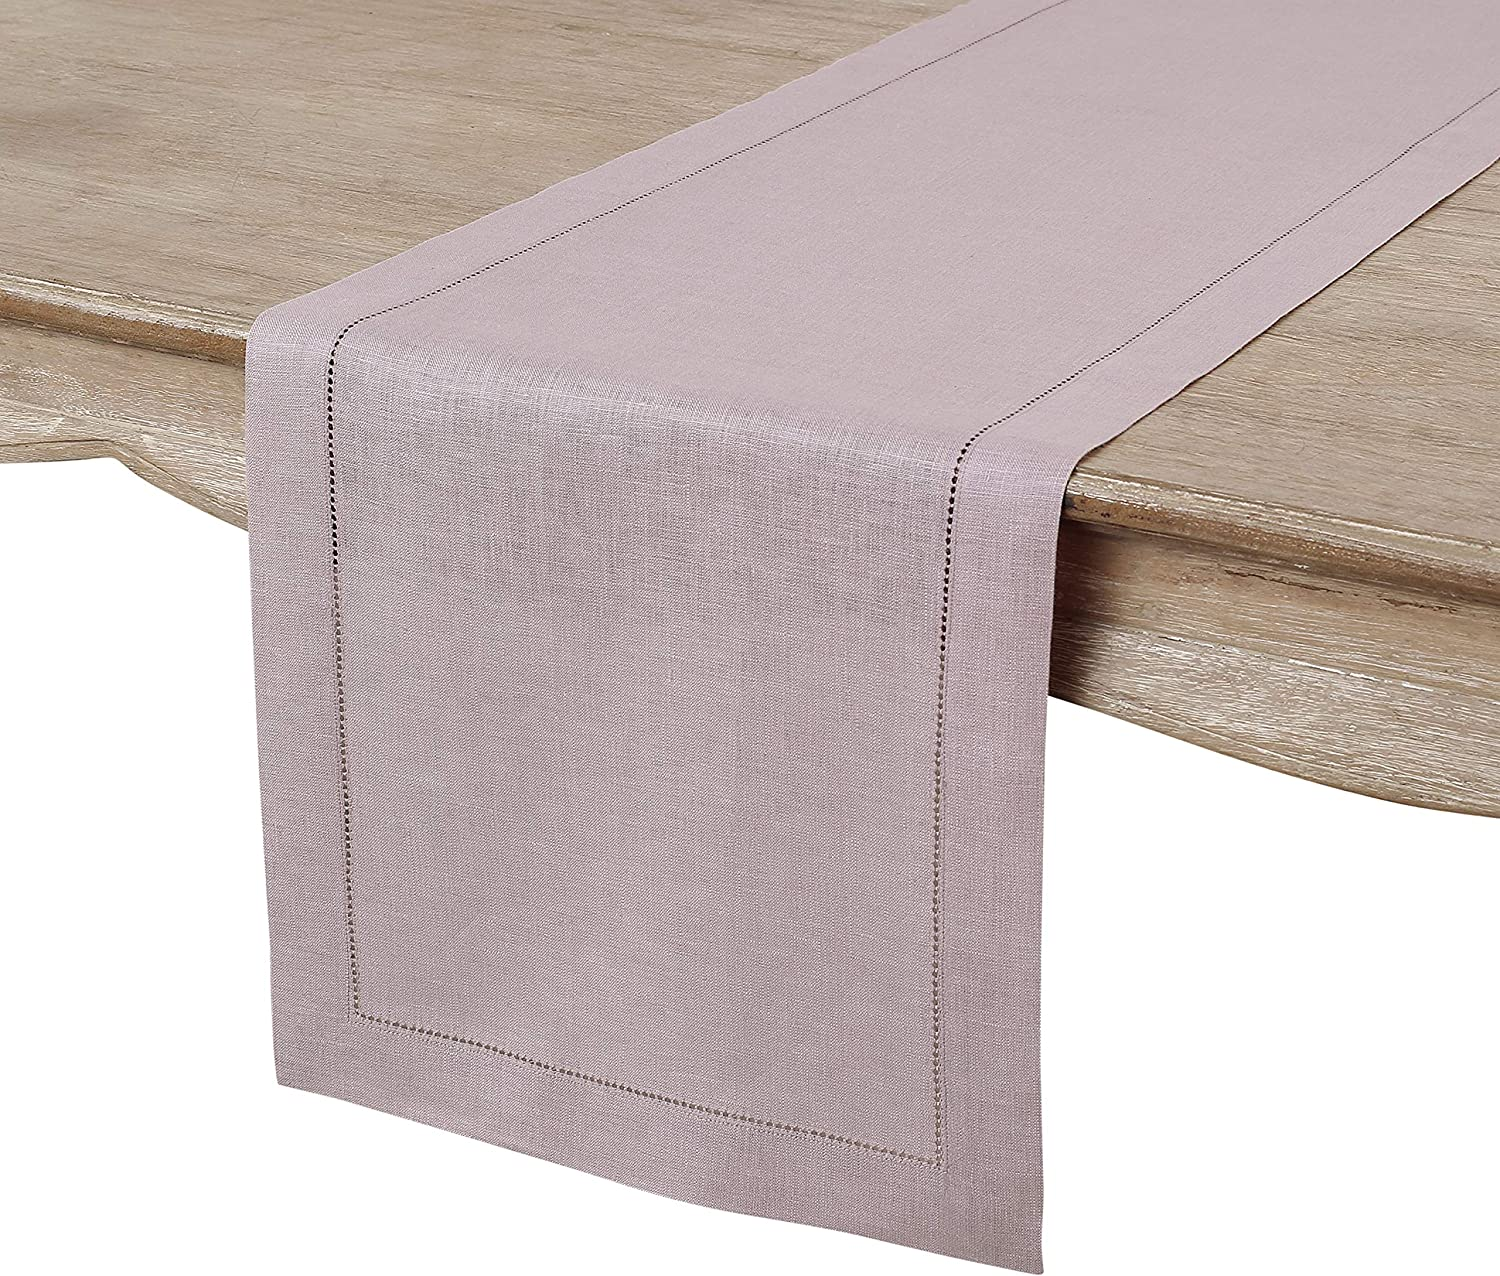 Solino Home 100% Pure Linen Hemstitch Table Runner - 14 x 108 Inch, Handcrafted from European Flax, Machine Washable Classic Hemstitch - Lilac